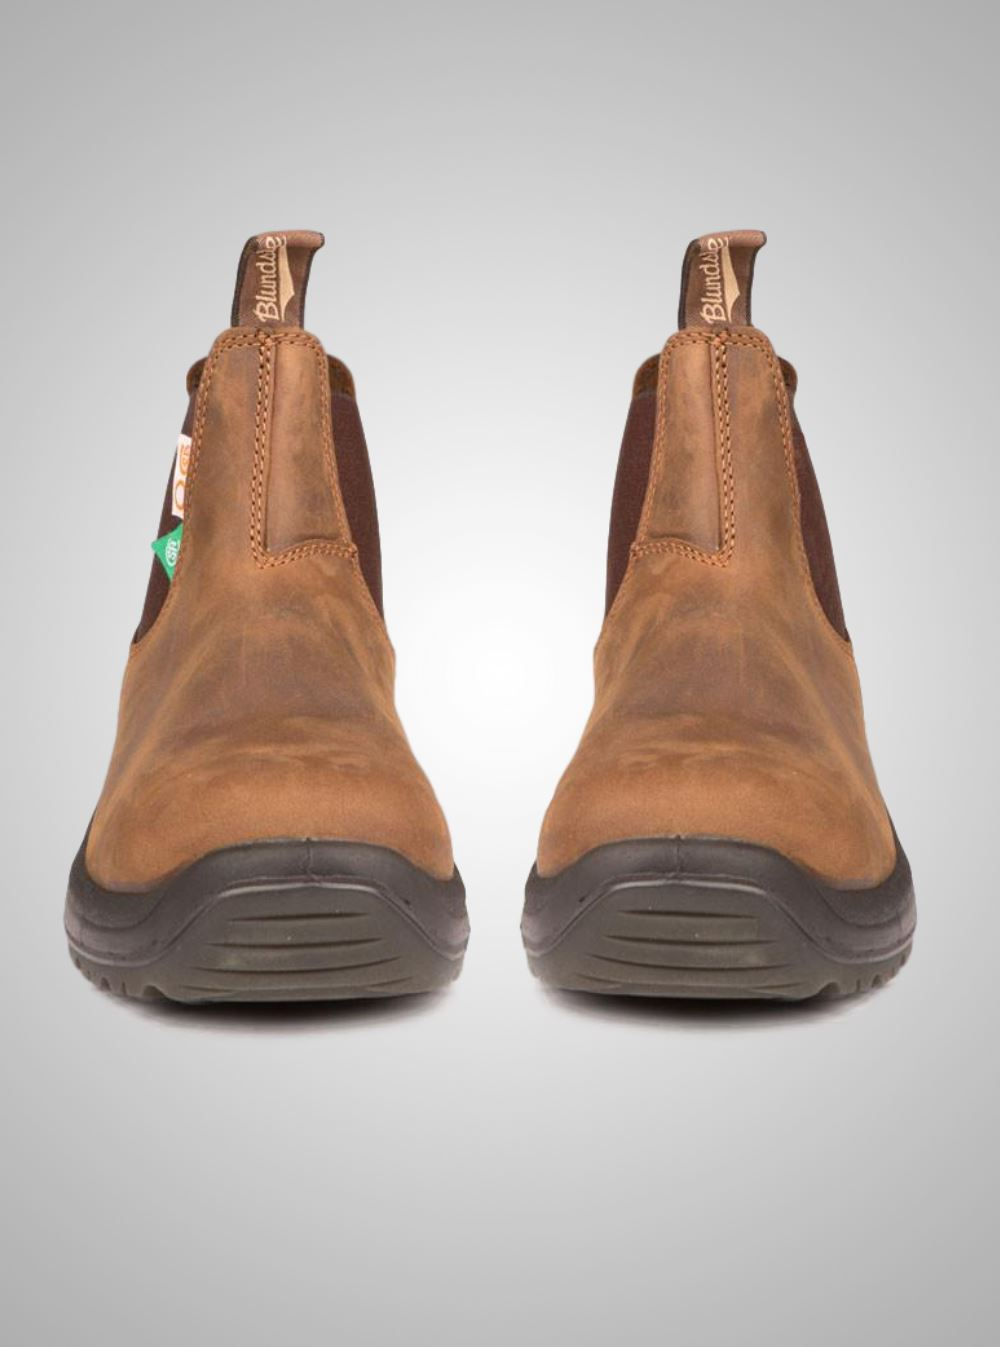 Blundstone 164 - The Greenpatch in Crazy Horse Brown